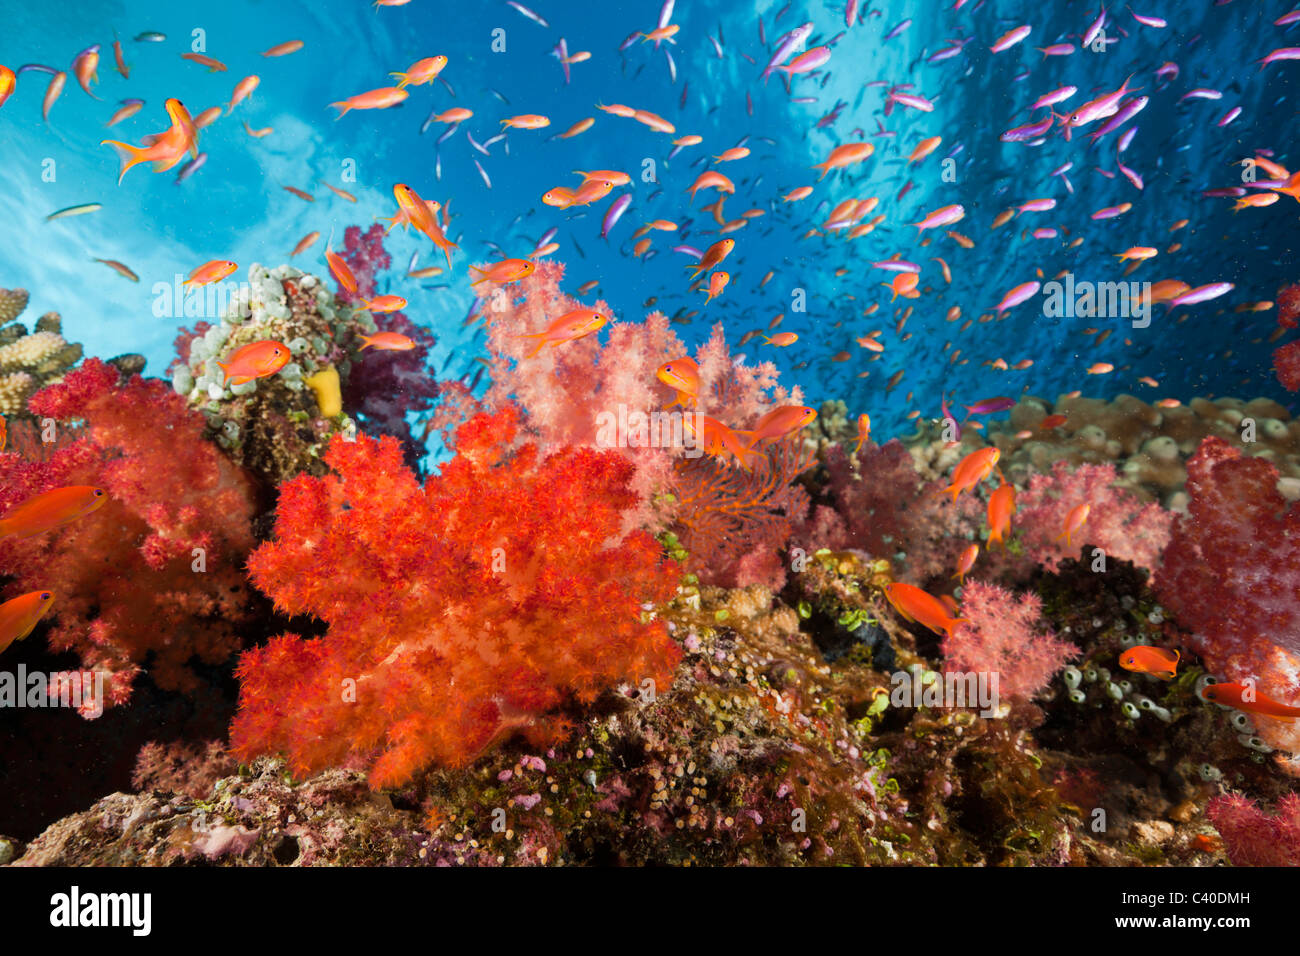 Coral Reef Fish Fiji Stock Photos & Coral Reef Fish Fiji Stock ...